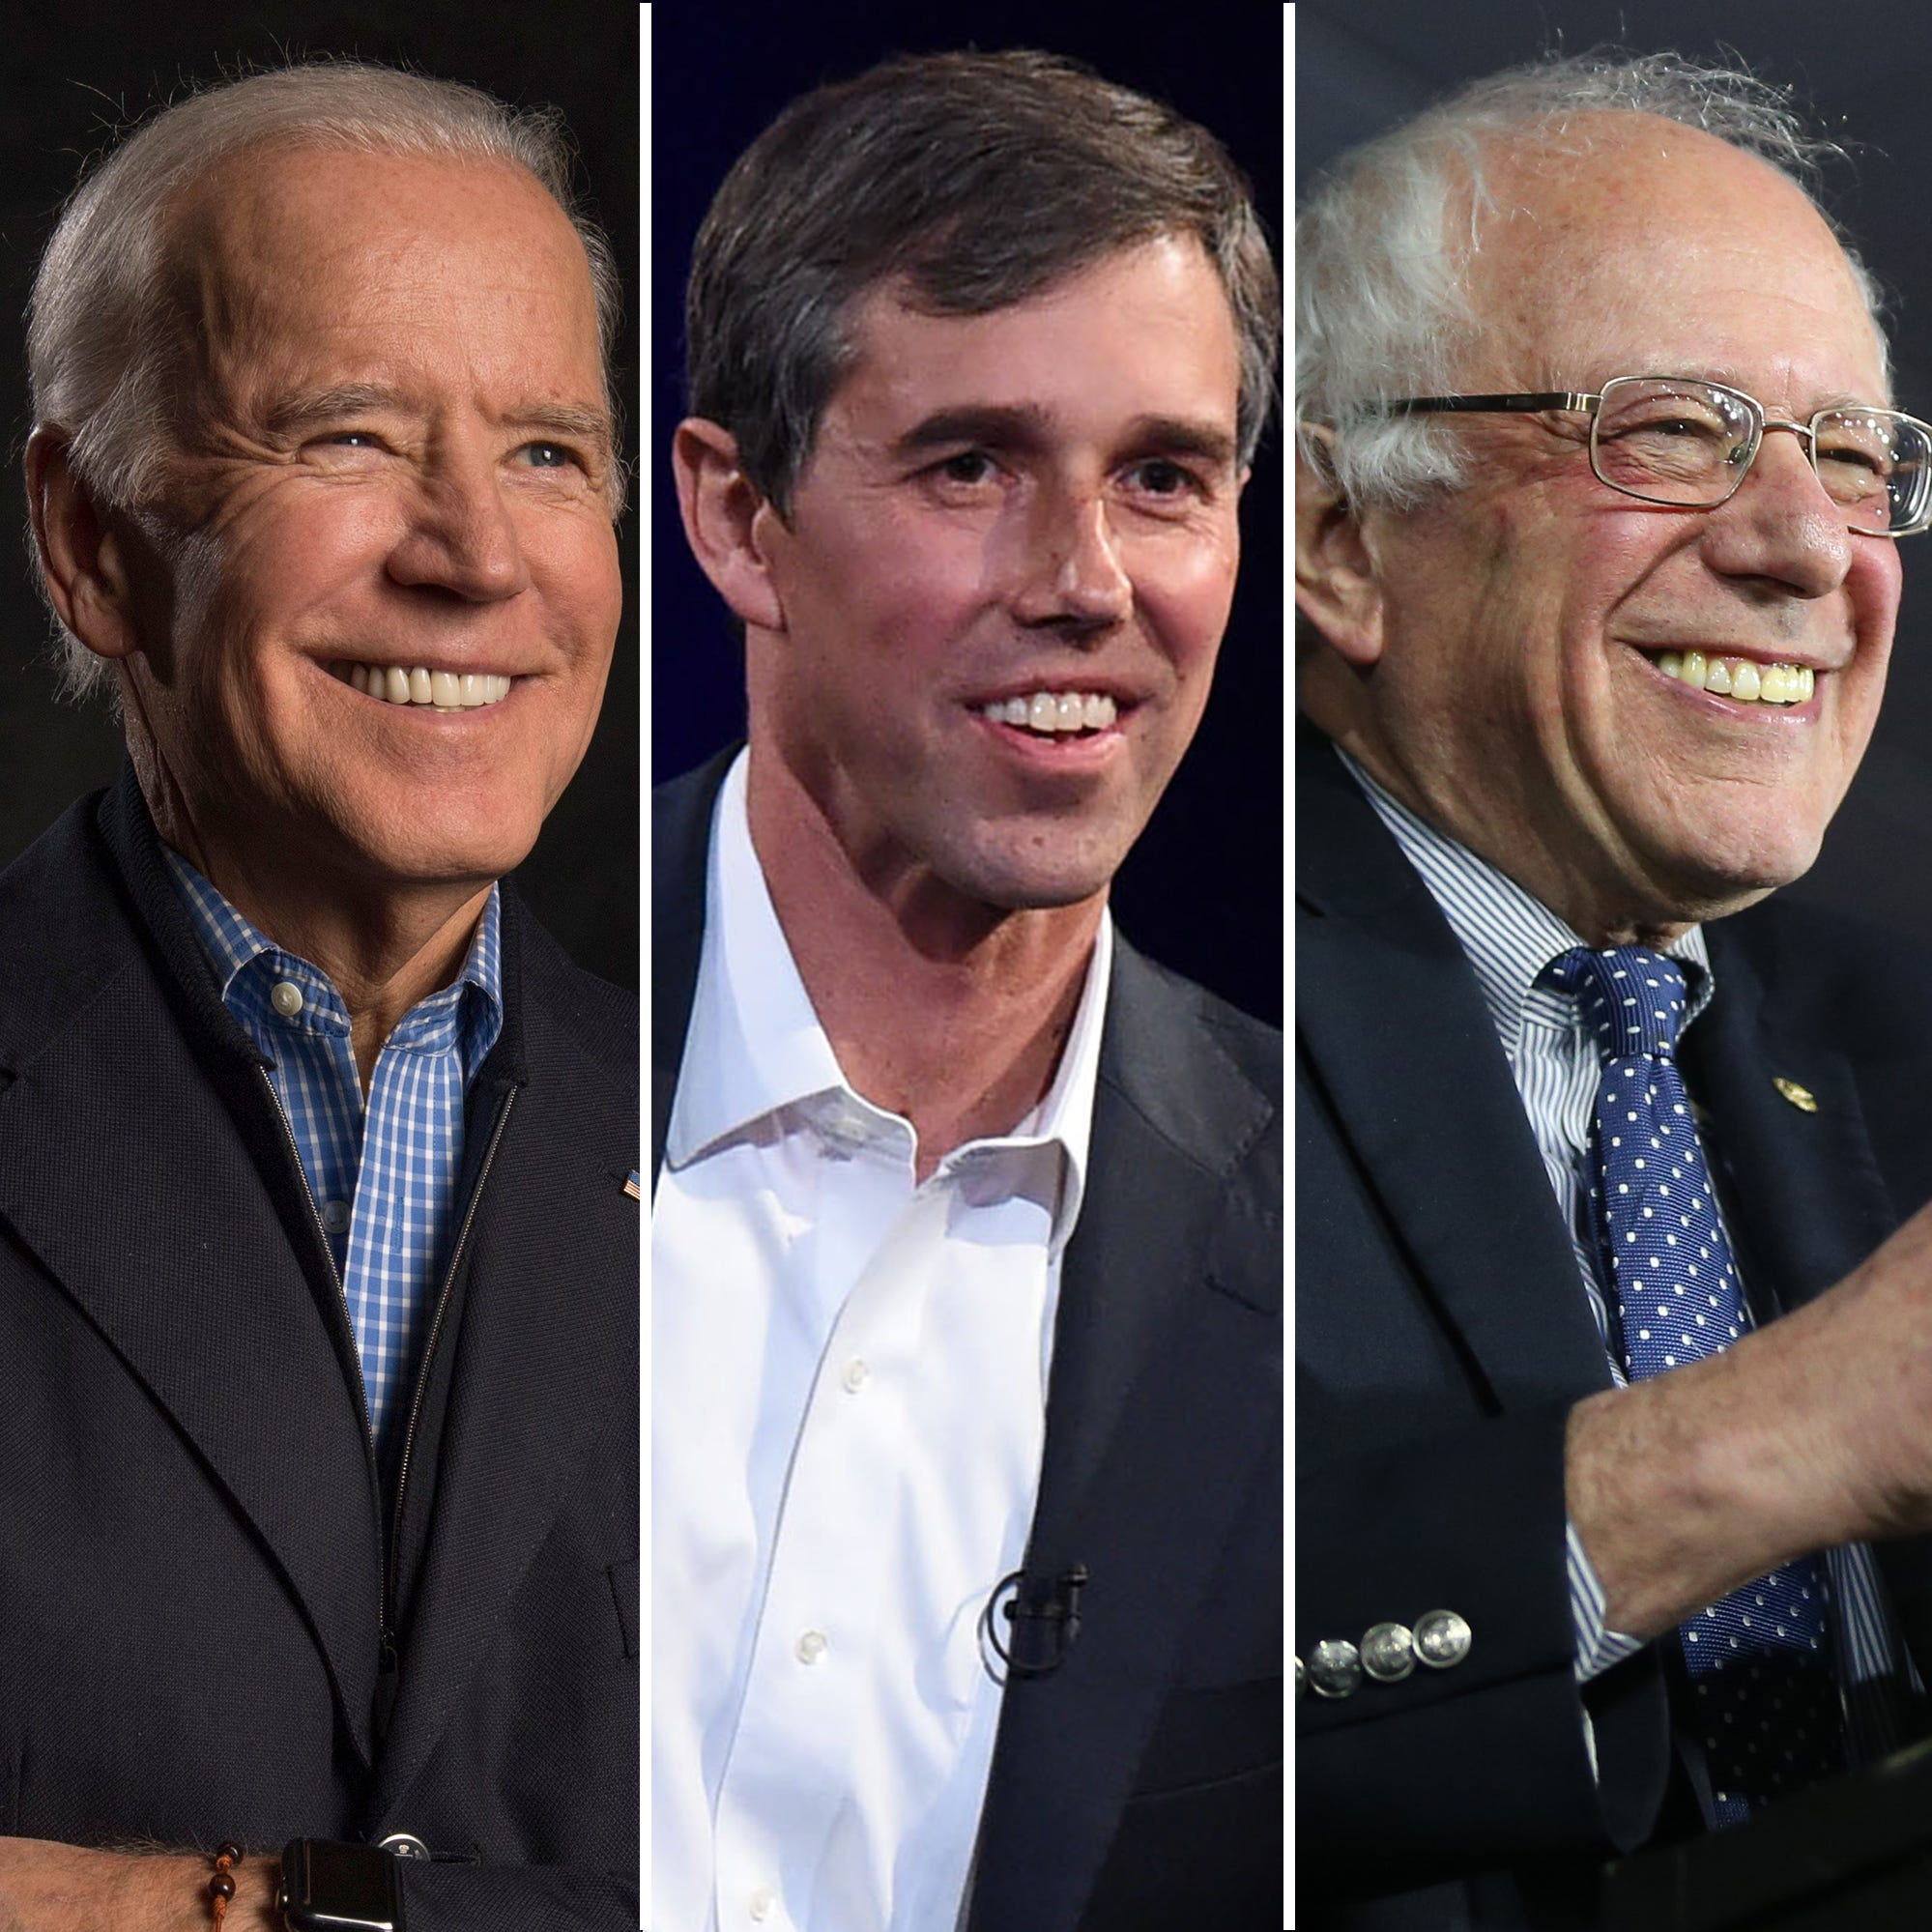 How long can Joe Biden, Bernie Sanders and Beto O'Rourke afford to wait ahead of the Iowa caucuses?